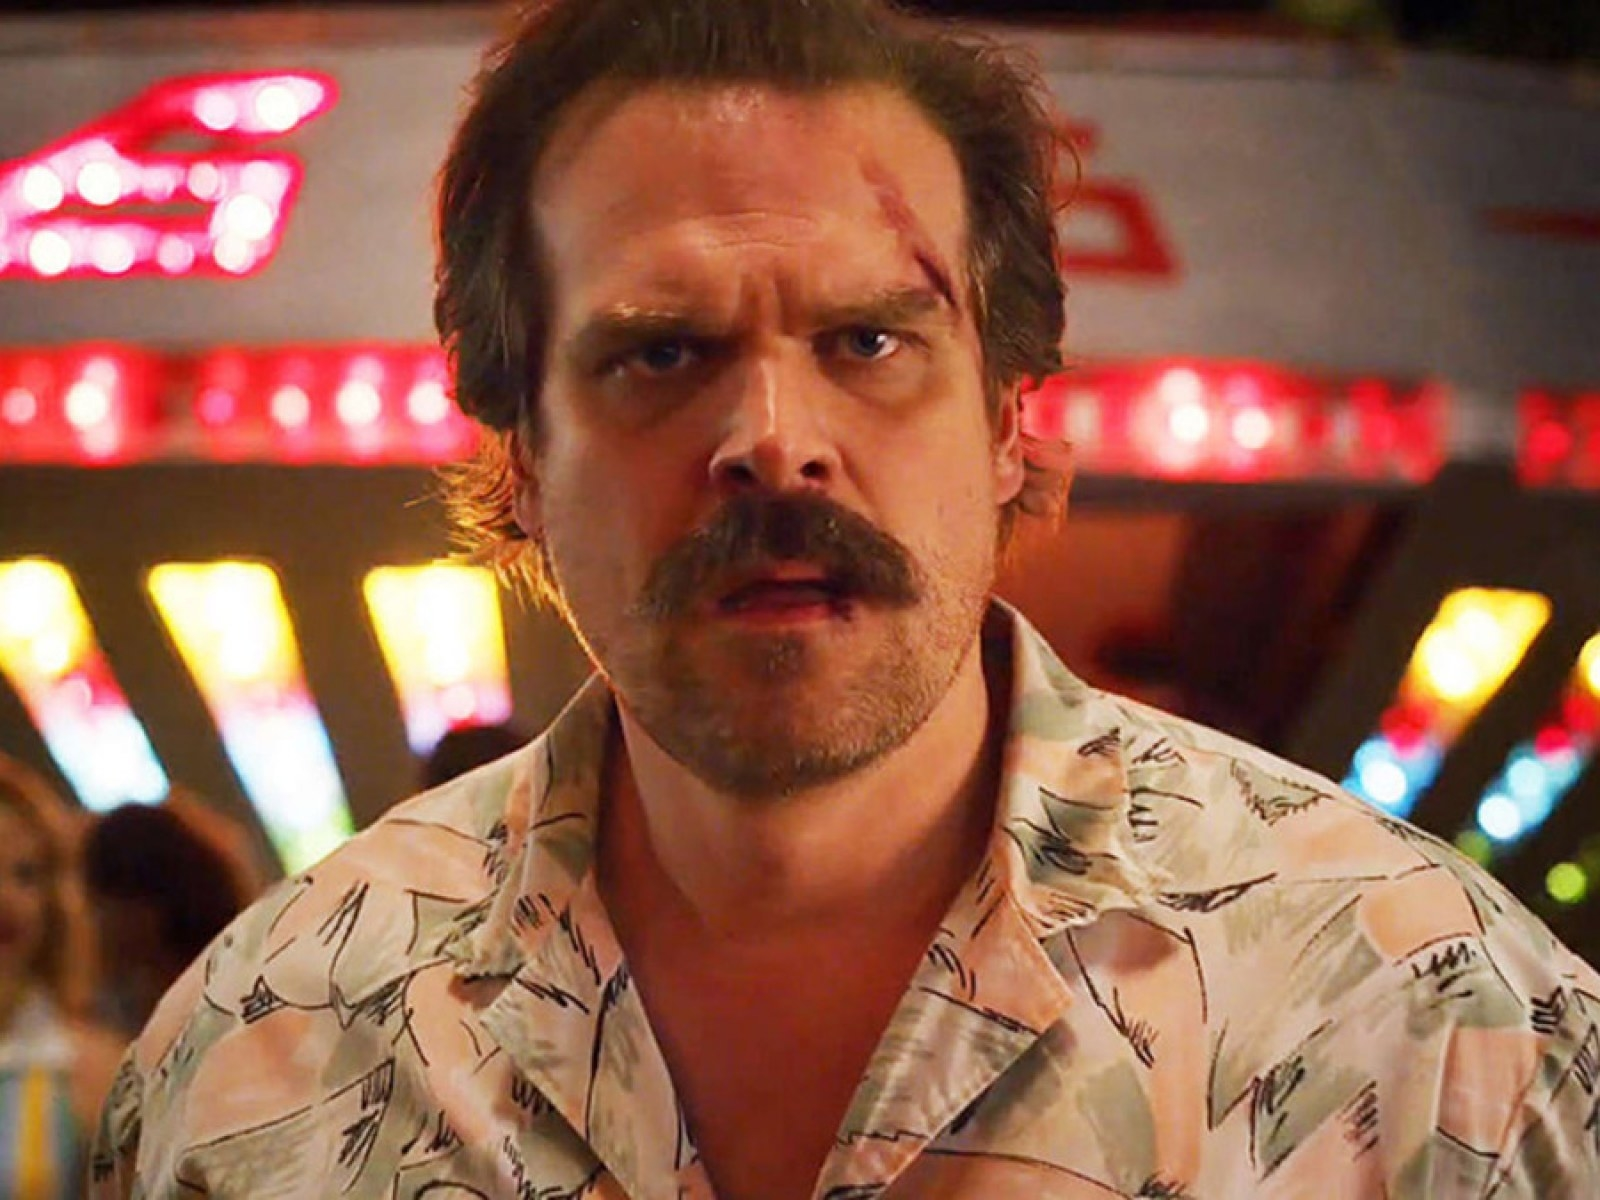 Jim Hopper, frowning, with a bloody lip and a wound on his temple